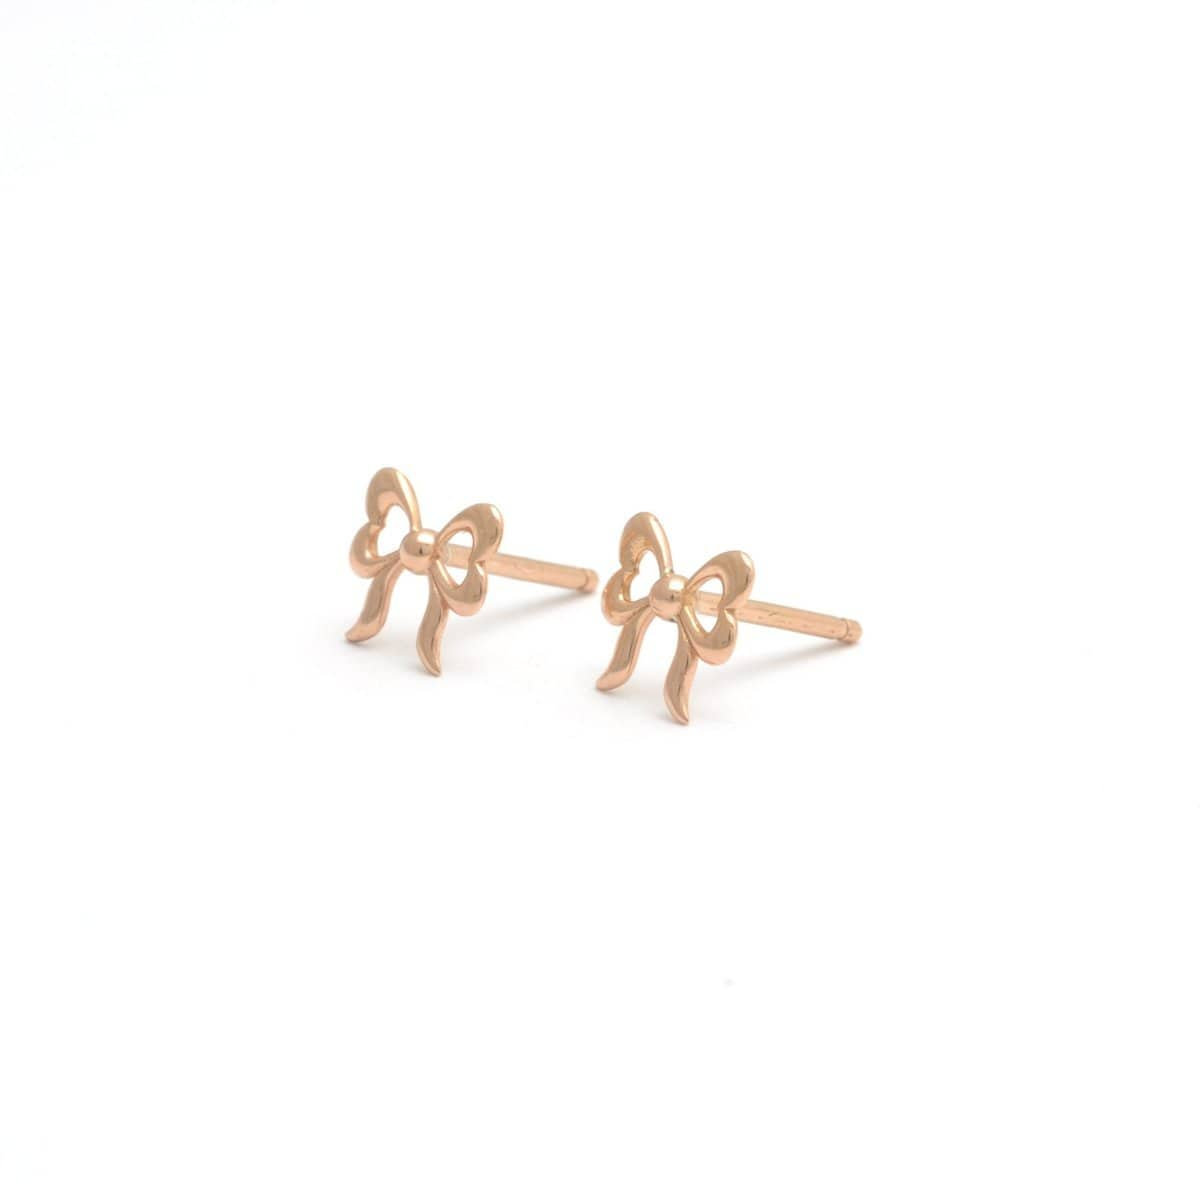 Small Bow Studs Rose Gold Earrings Elizabeth Jane Atelier